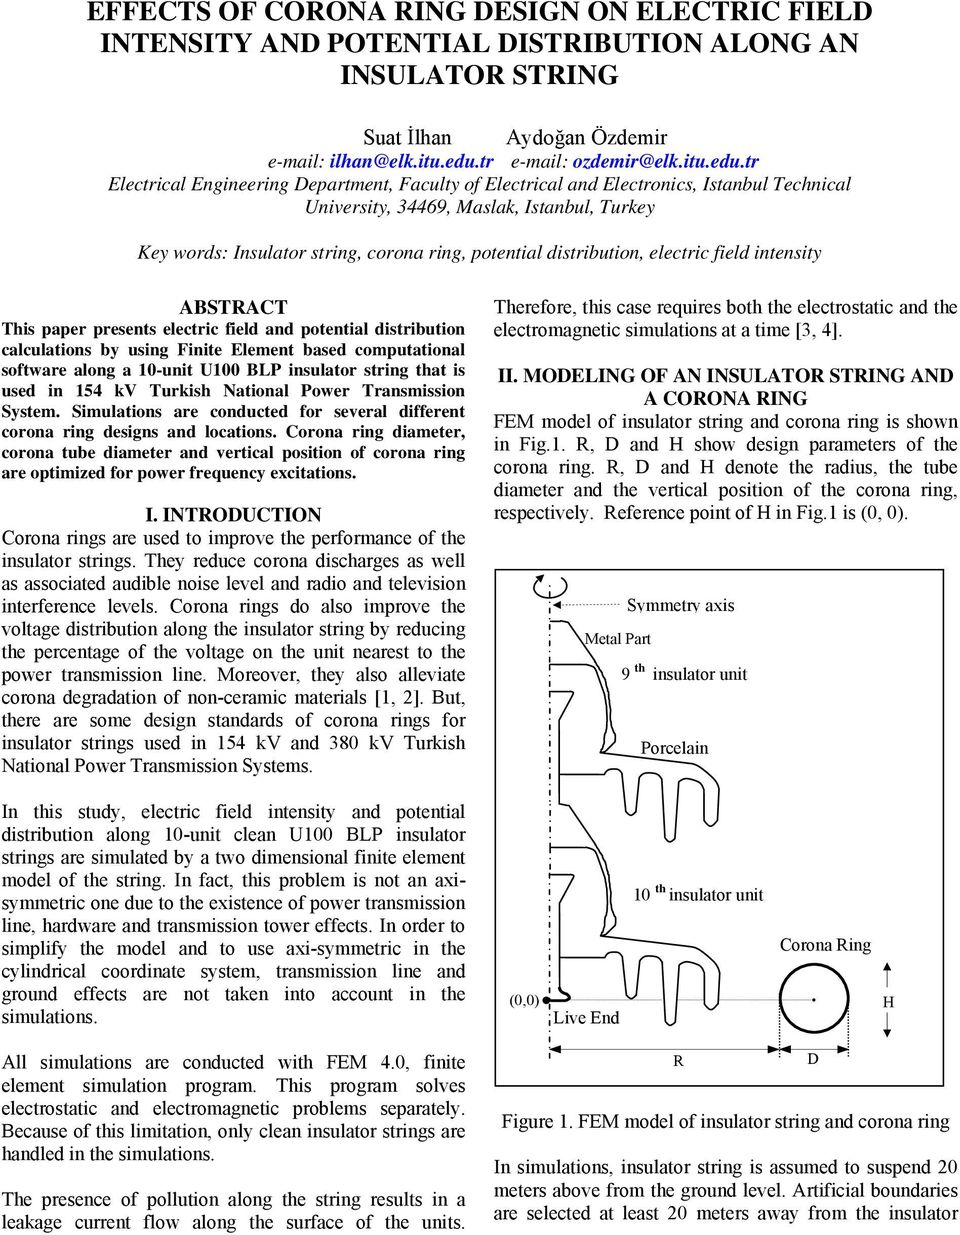 EFFECTS OF CORONA RING DESIGN ON ELECTRIC FIELD INTENSITY